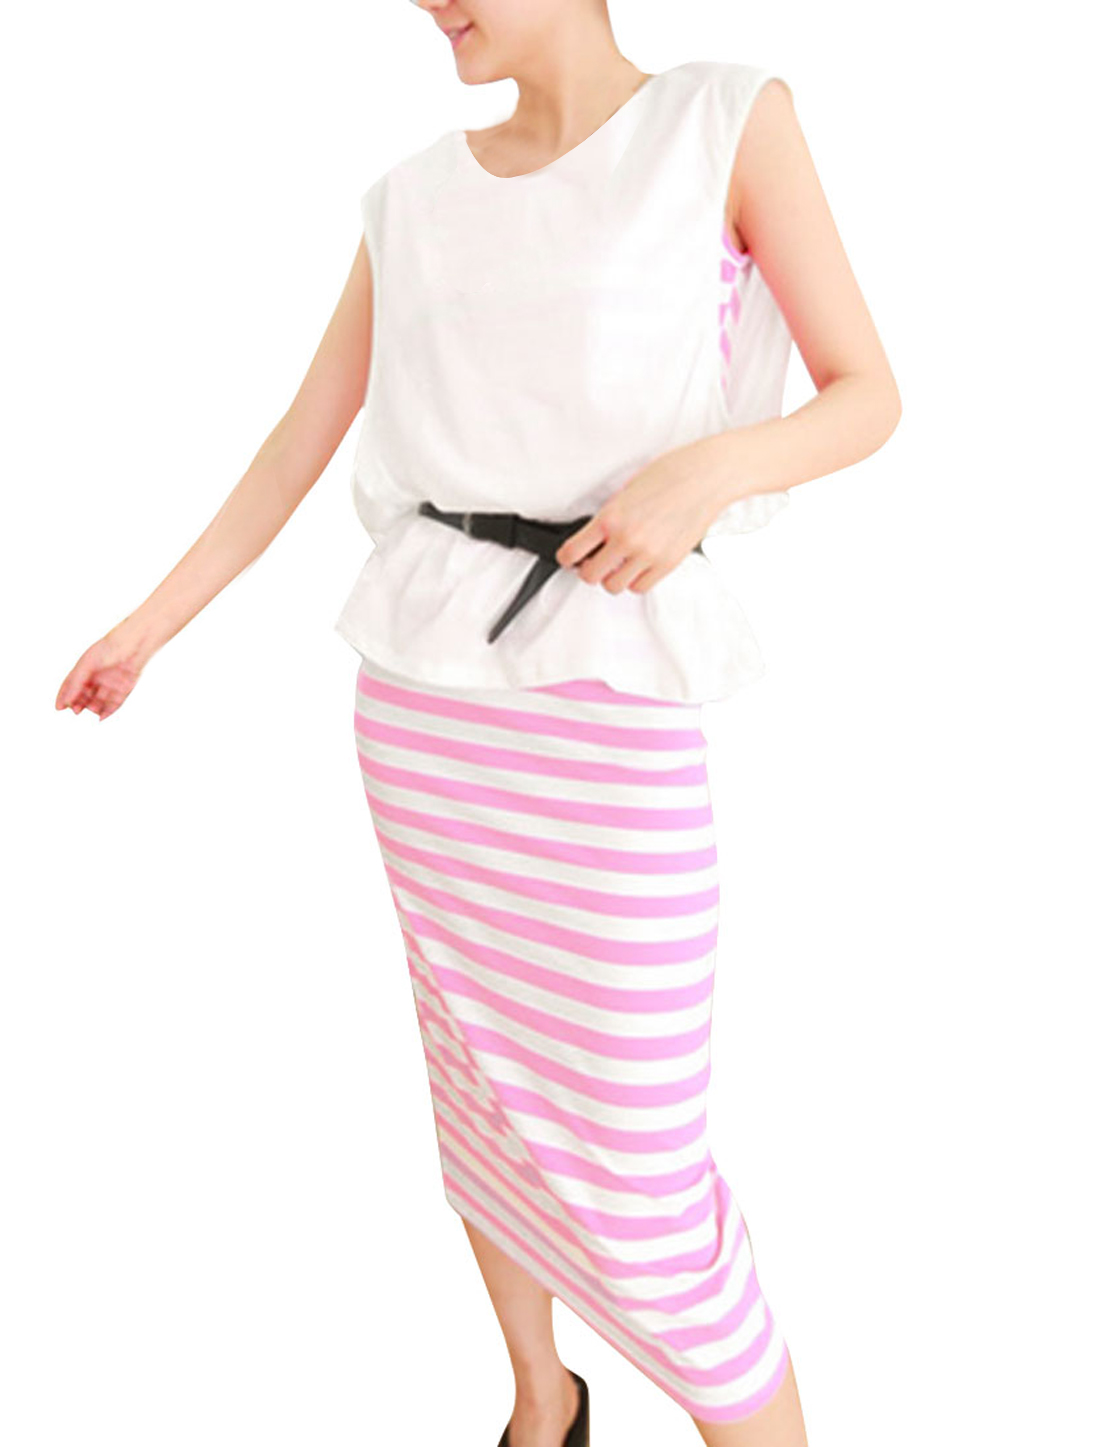 Women Scoop Neck Leisure Top w Slim Fit Stripes Prints Tank Dress White Pink XS